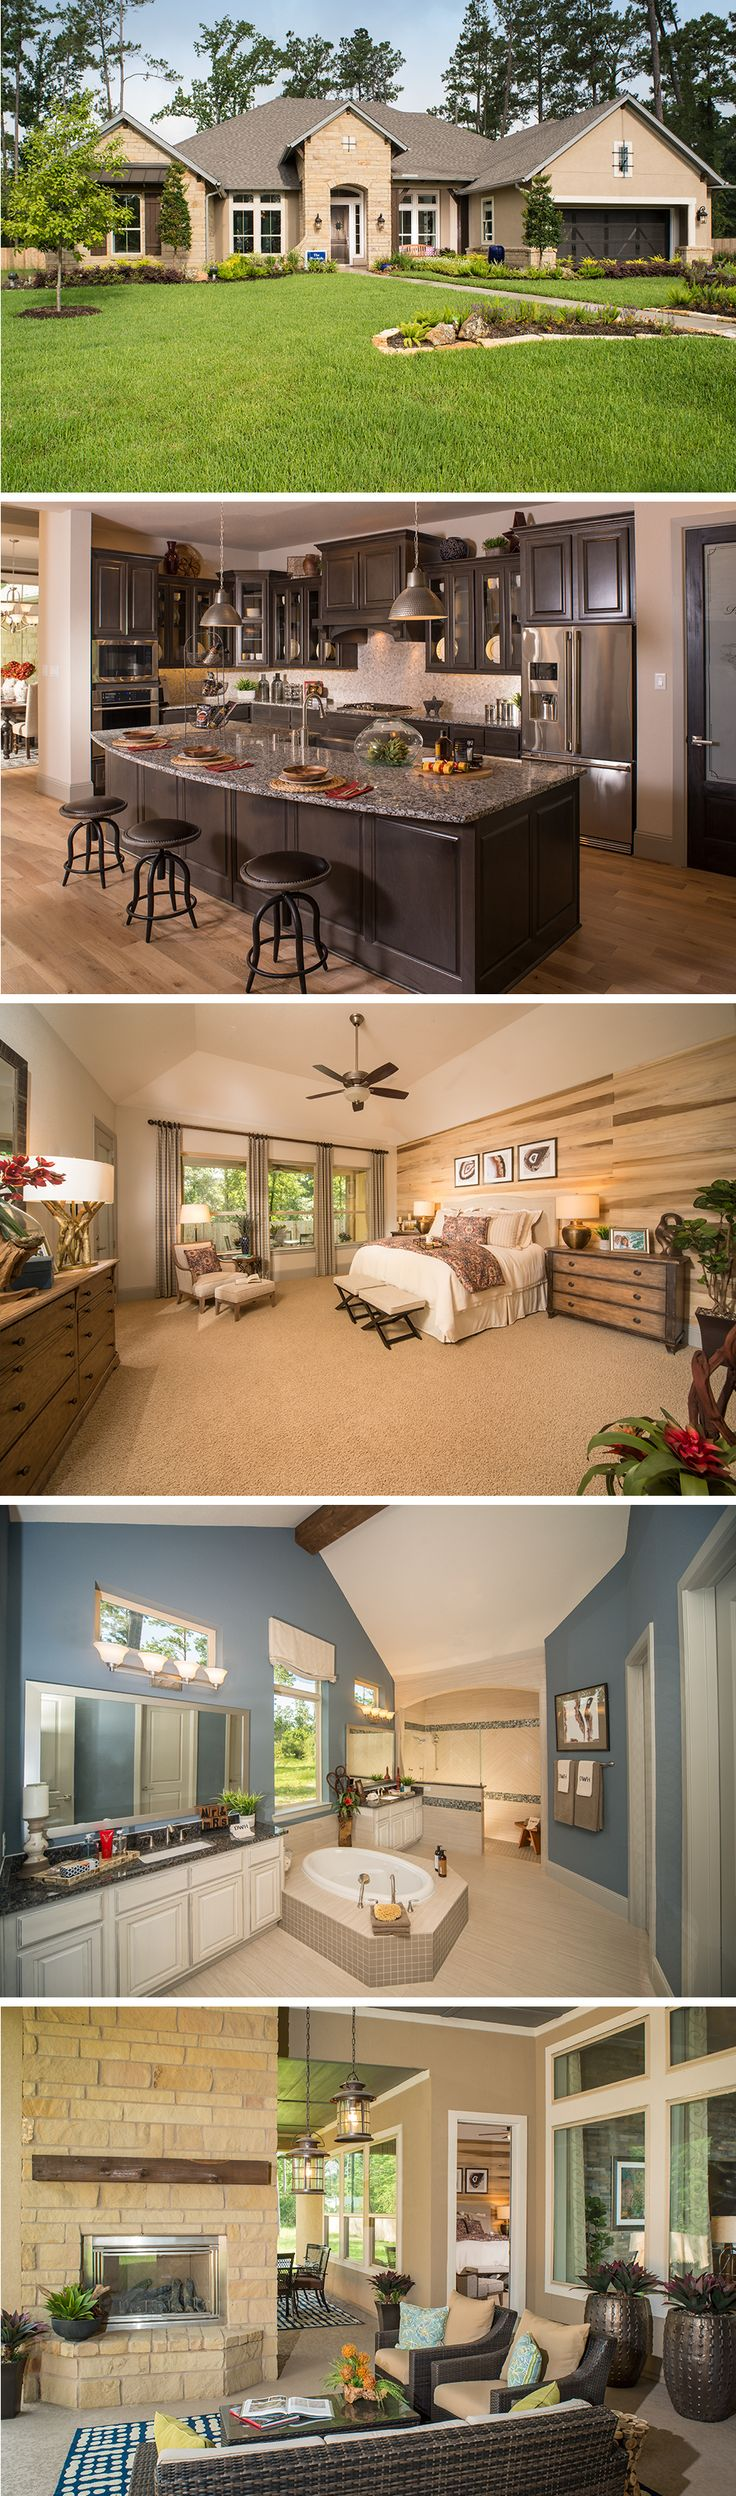 The Woodside by David Weekley Homes in Mostyn Manor Reserve is a 3 or 4 bedroom floorplan that features a sunroom, a large covered porch and a 3 car garage. Custom home upgrades include an extended outdoor living space, a bay window in the owners retreat, or a bonus room on the 2nd story.